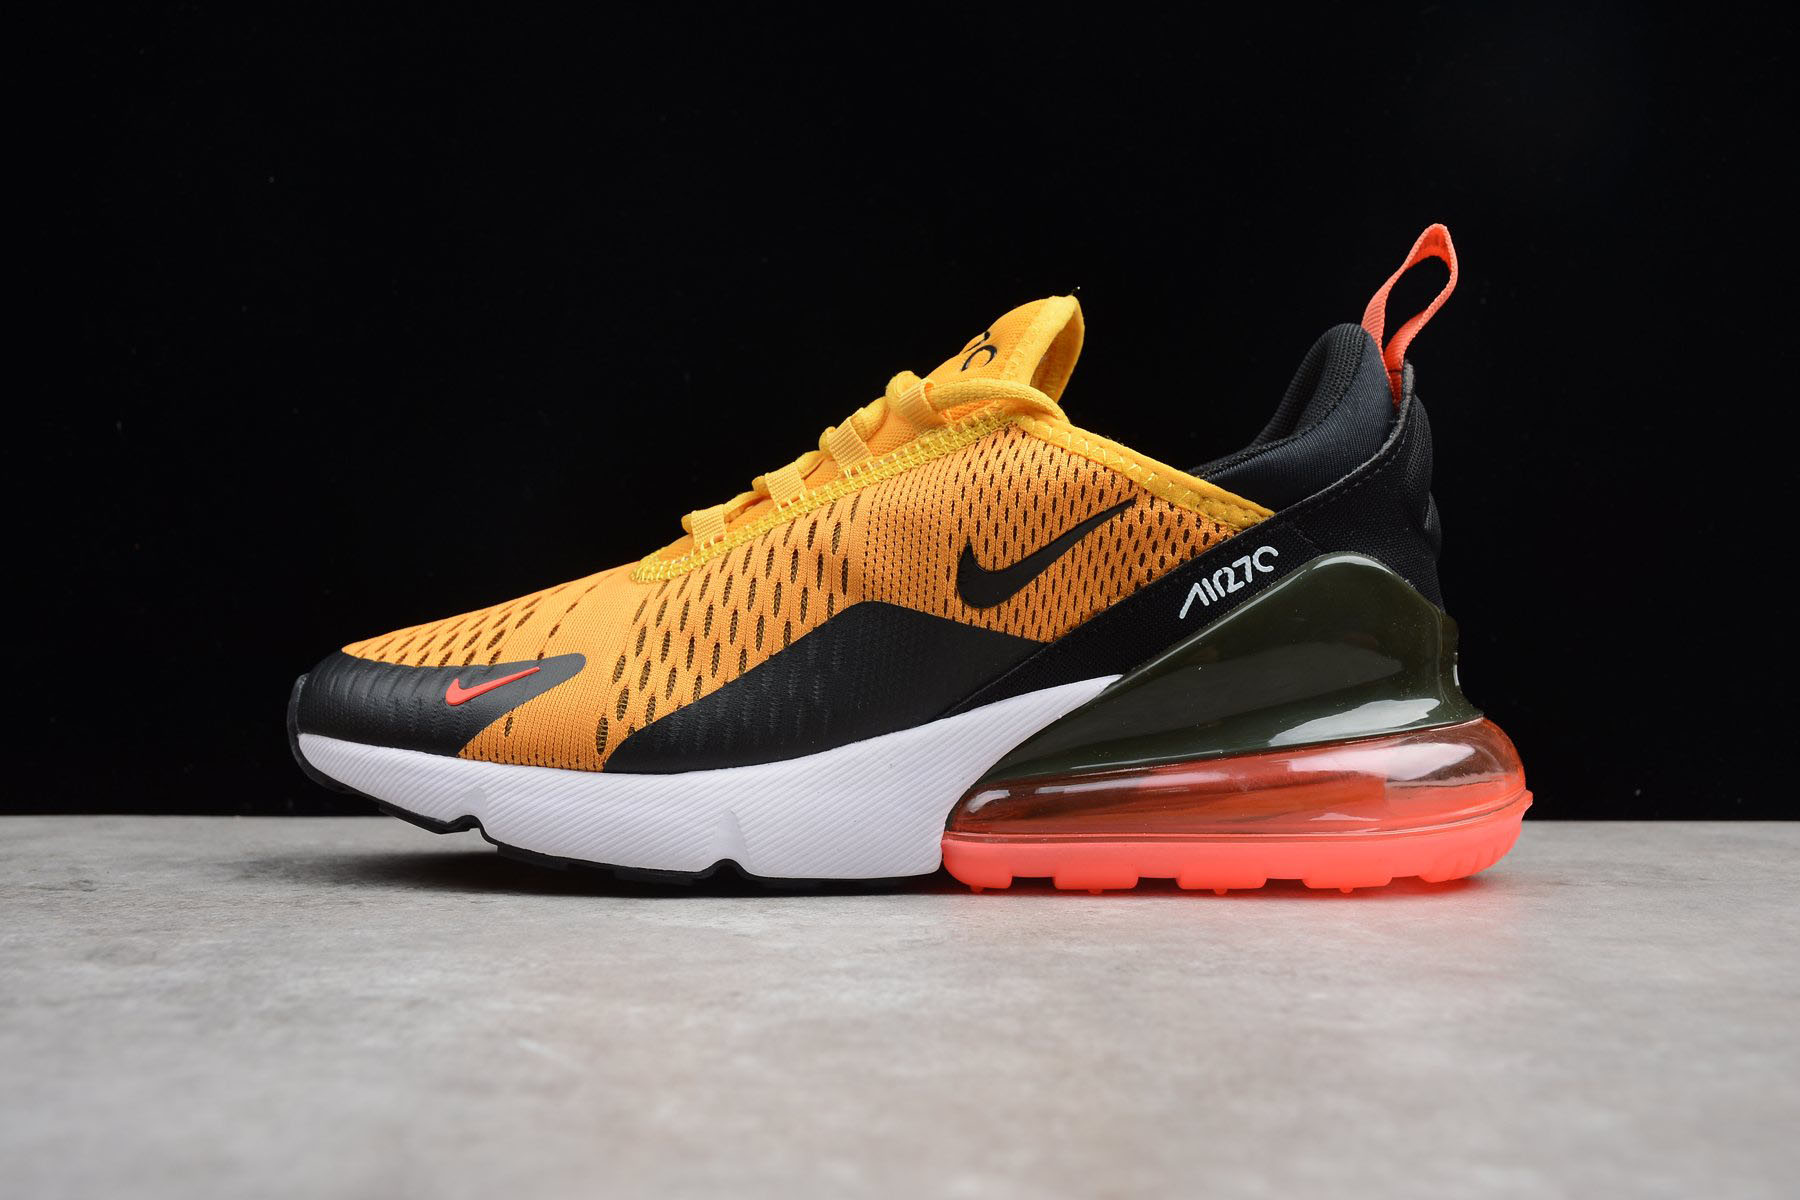 Men's Size Nike Air Max 270 Tiger Black/University Gold-Hot Punch-White AH8050-004